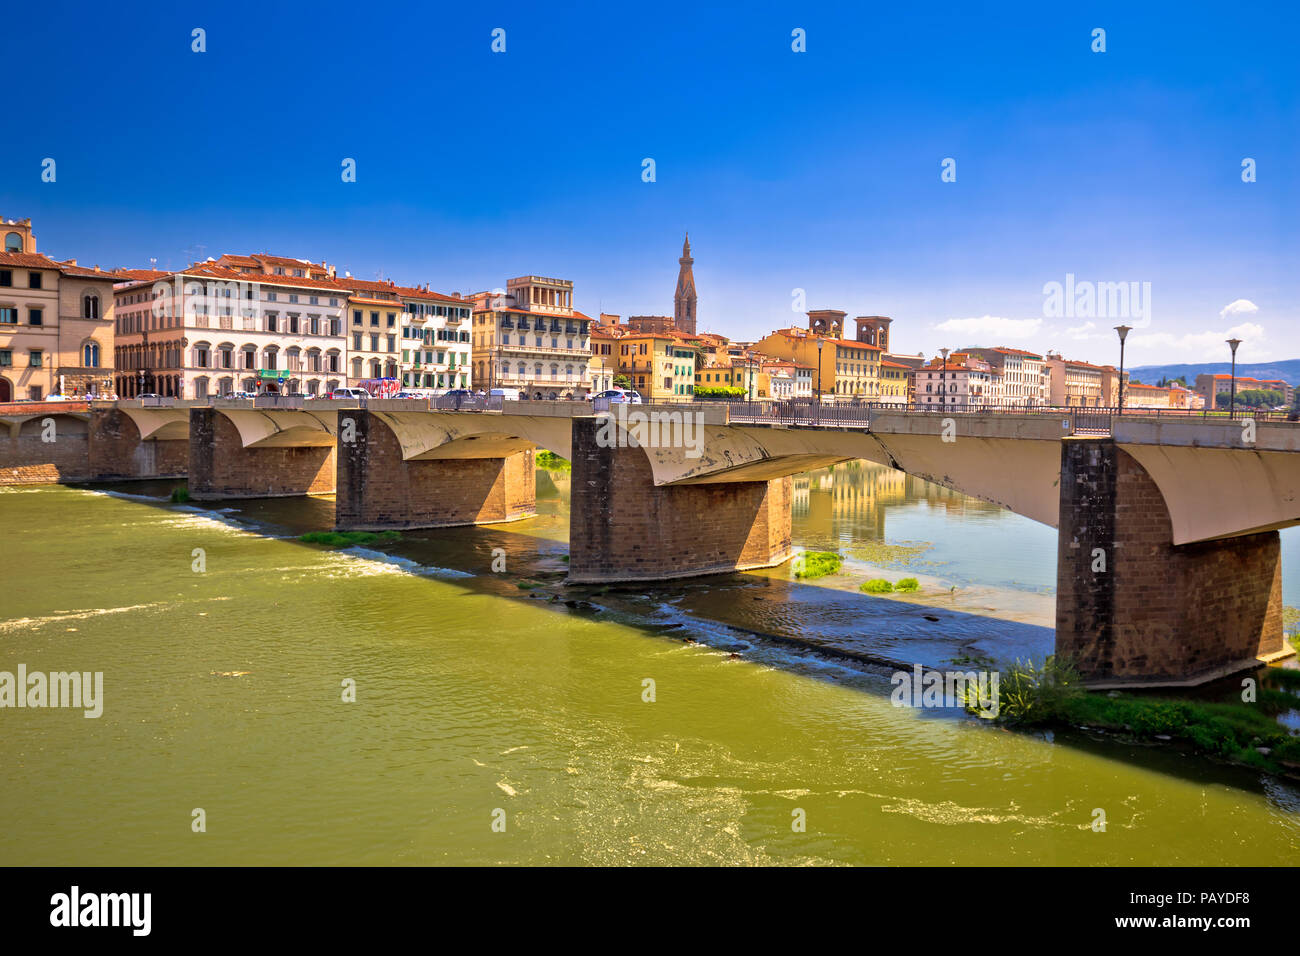 Arno river waterfront of Florence view, Tuscany region of Italy - Stock Image